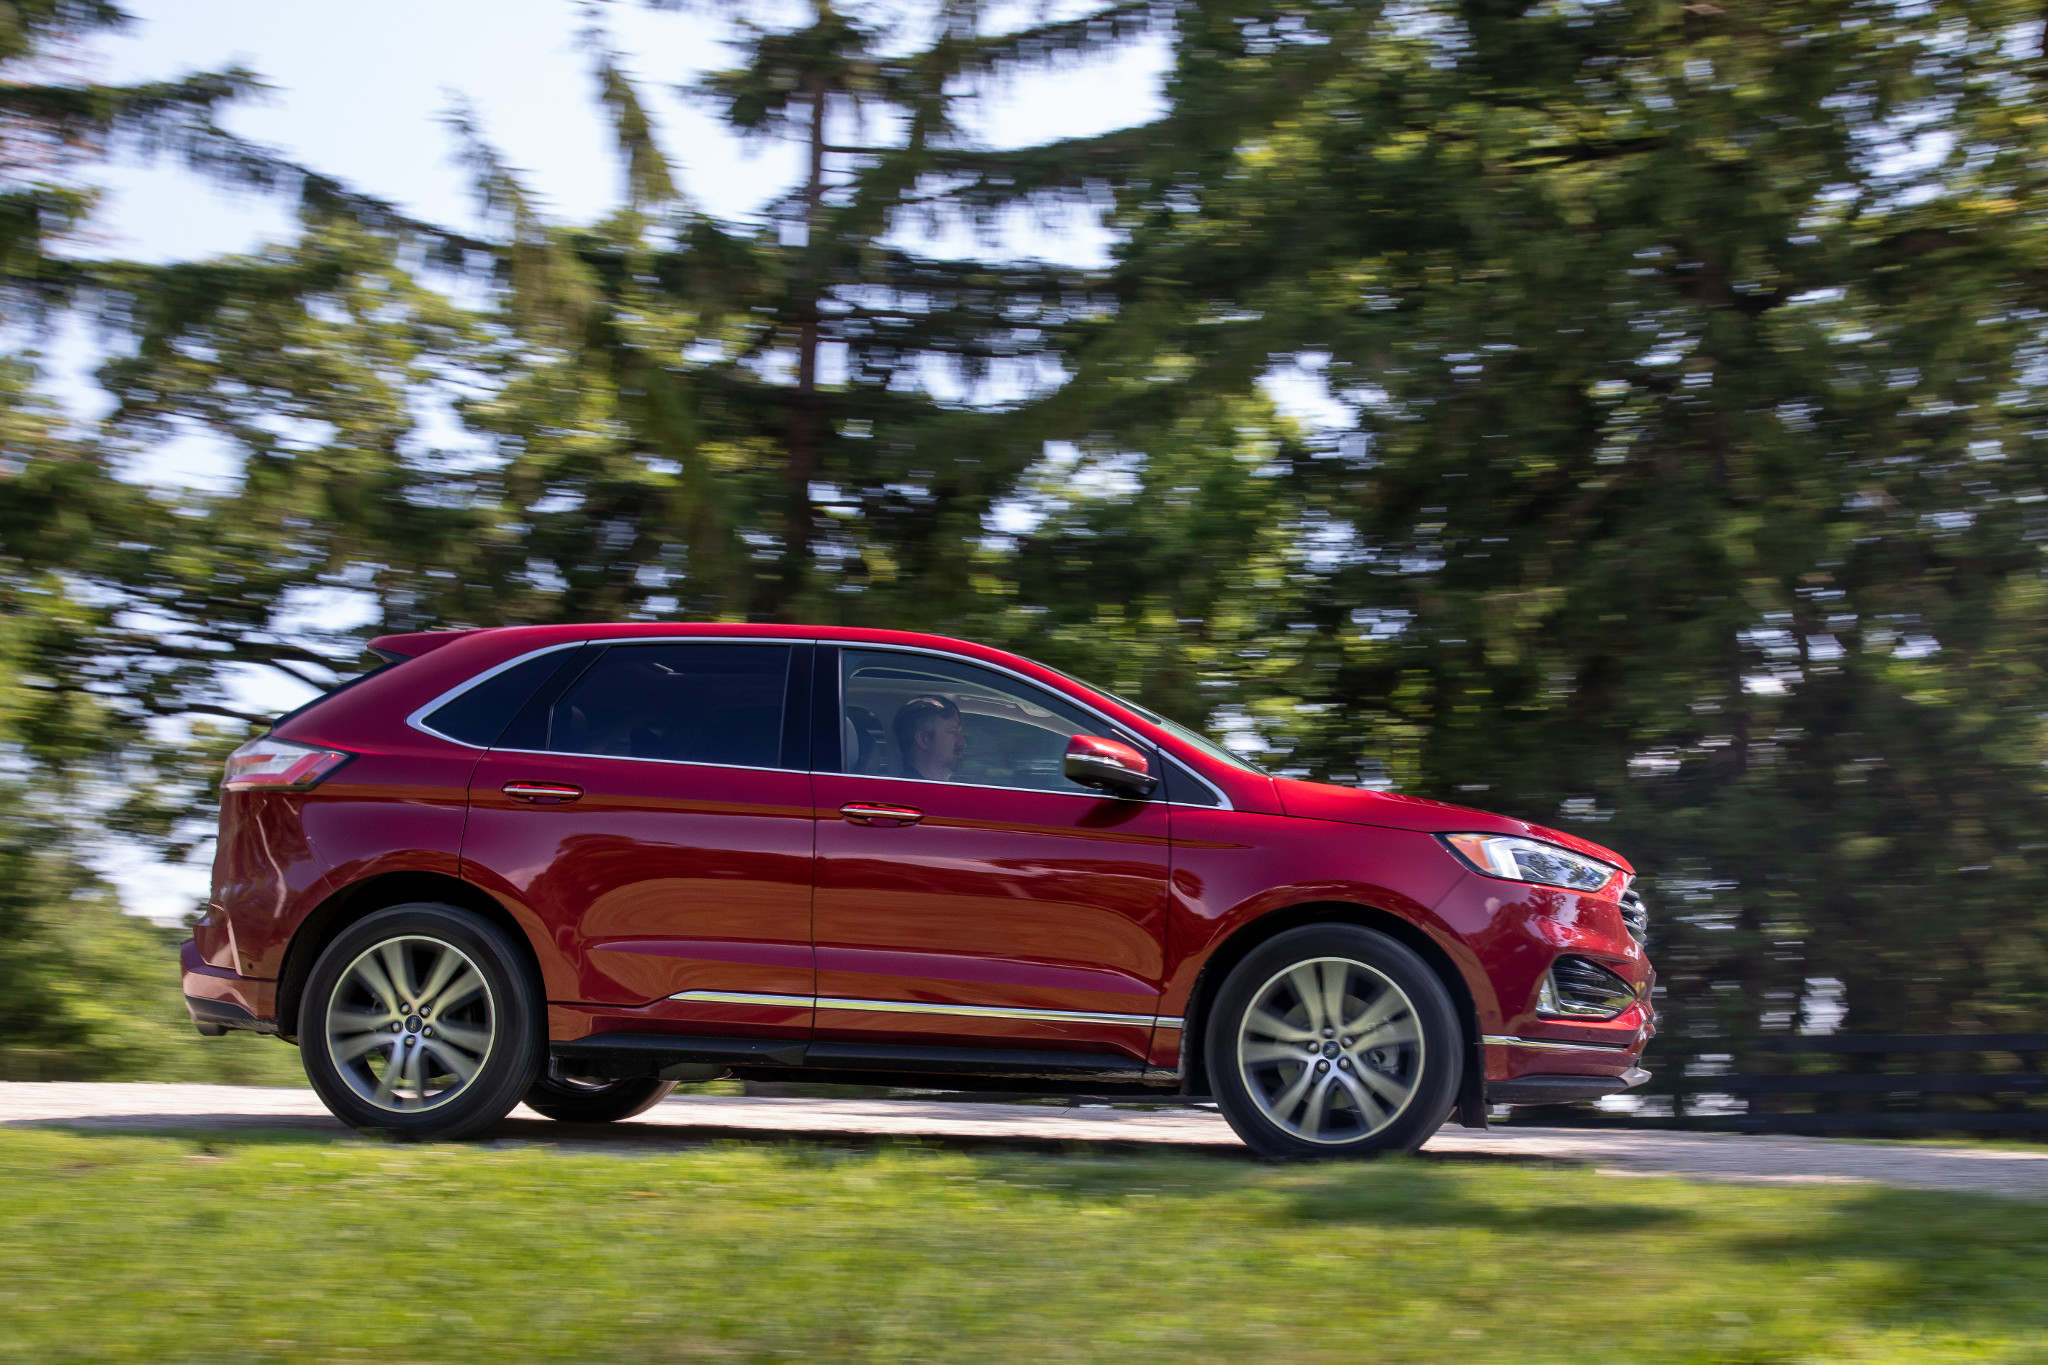 2019 Ford Edge Review: Solid, But the Shine Is Wearing Off